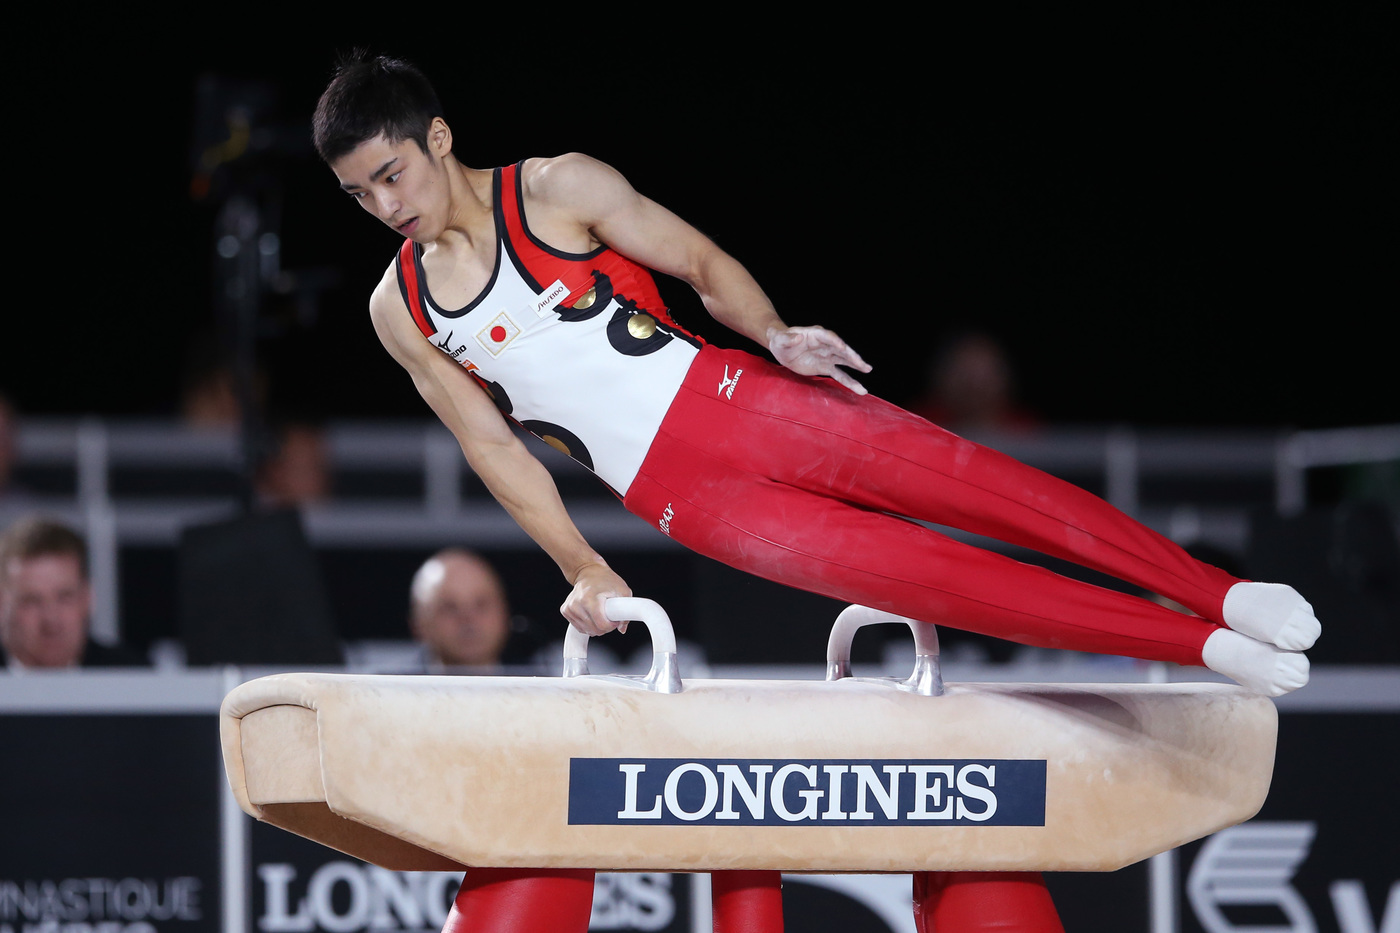 Longines Gymnastics Event: Canada's Brooklyn Moors and Japan's Kenzo Shirai presented with the Longines Prize for Elegance at the 47th Artistic Gymnastics World Championships in Montréal  5